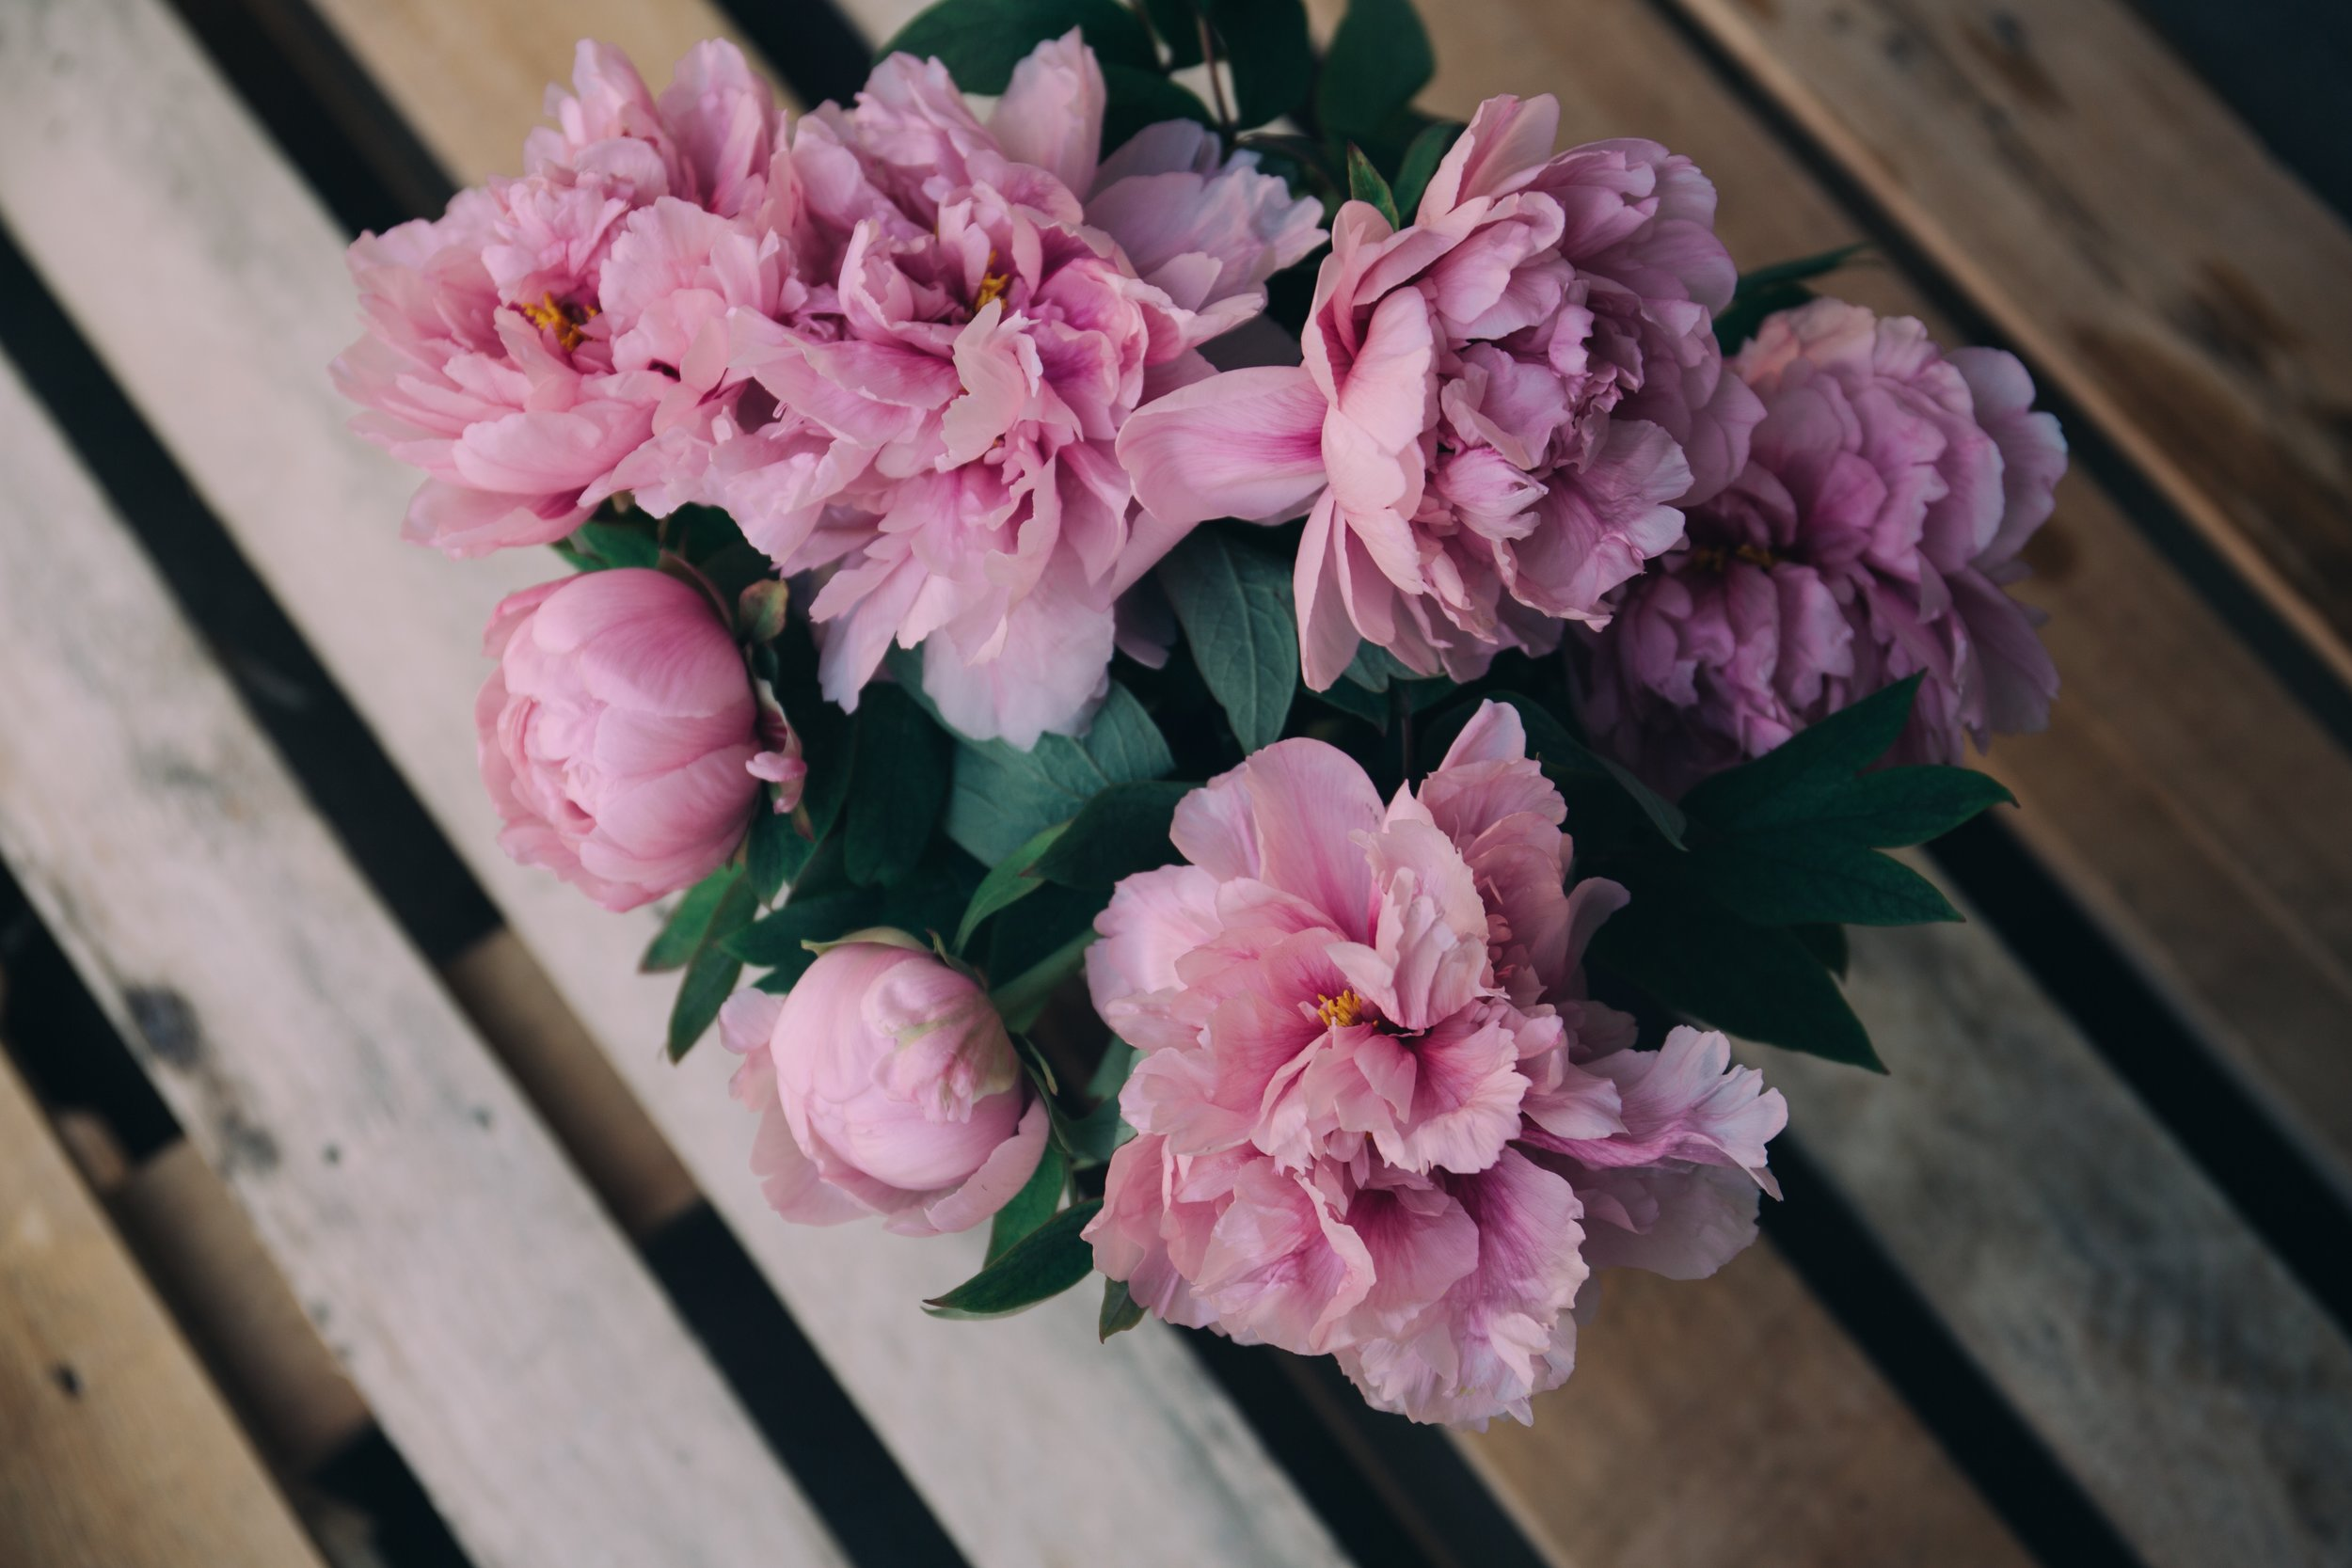 List of spring flowers peonies.jpg